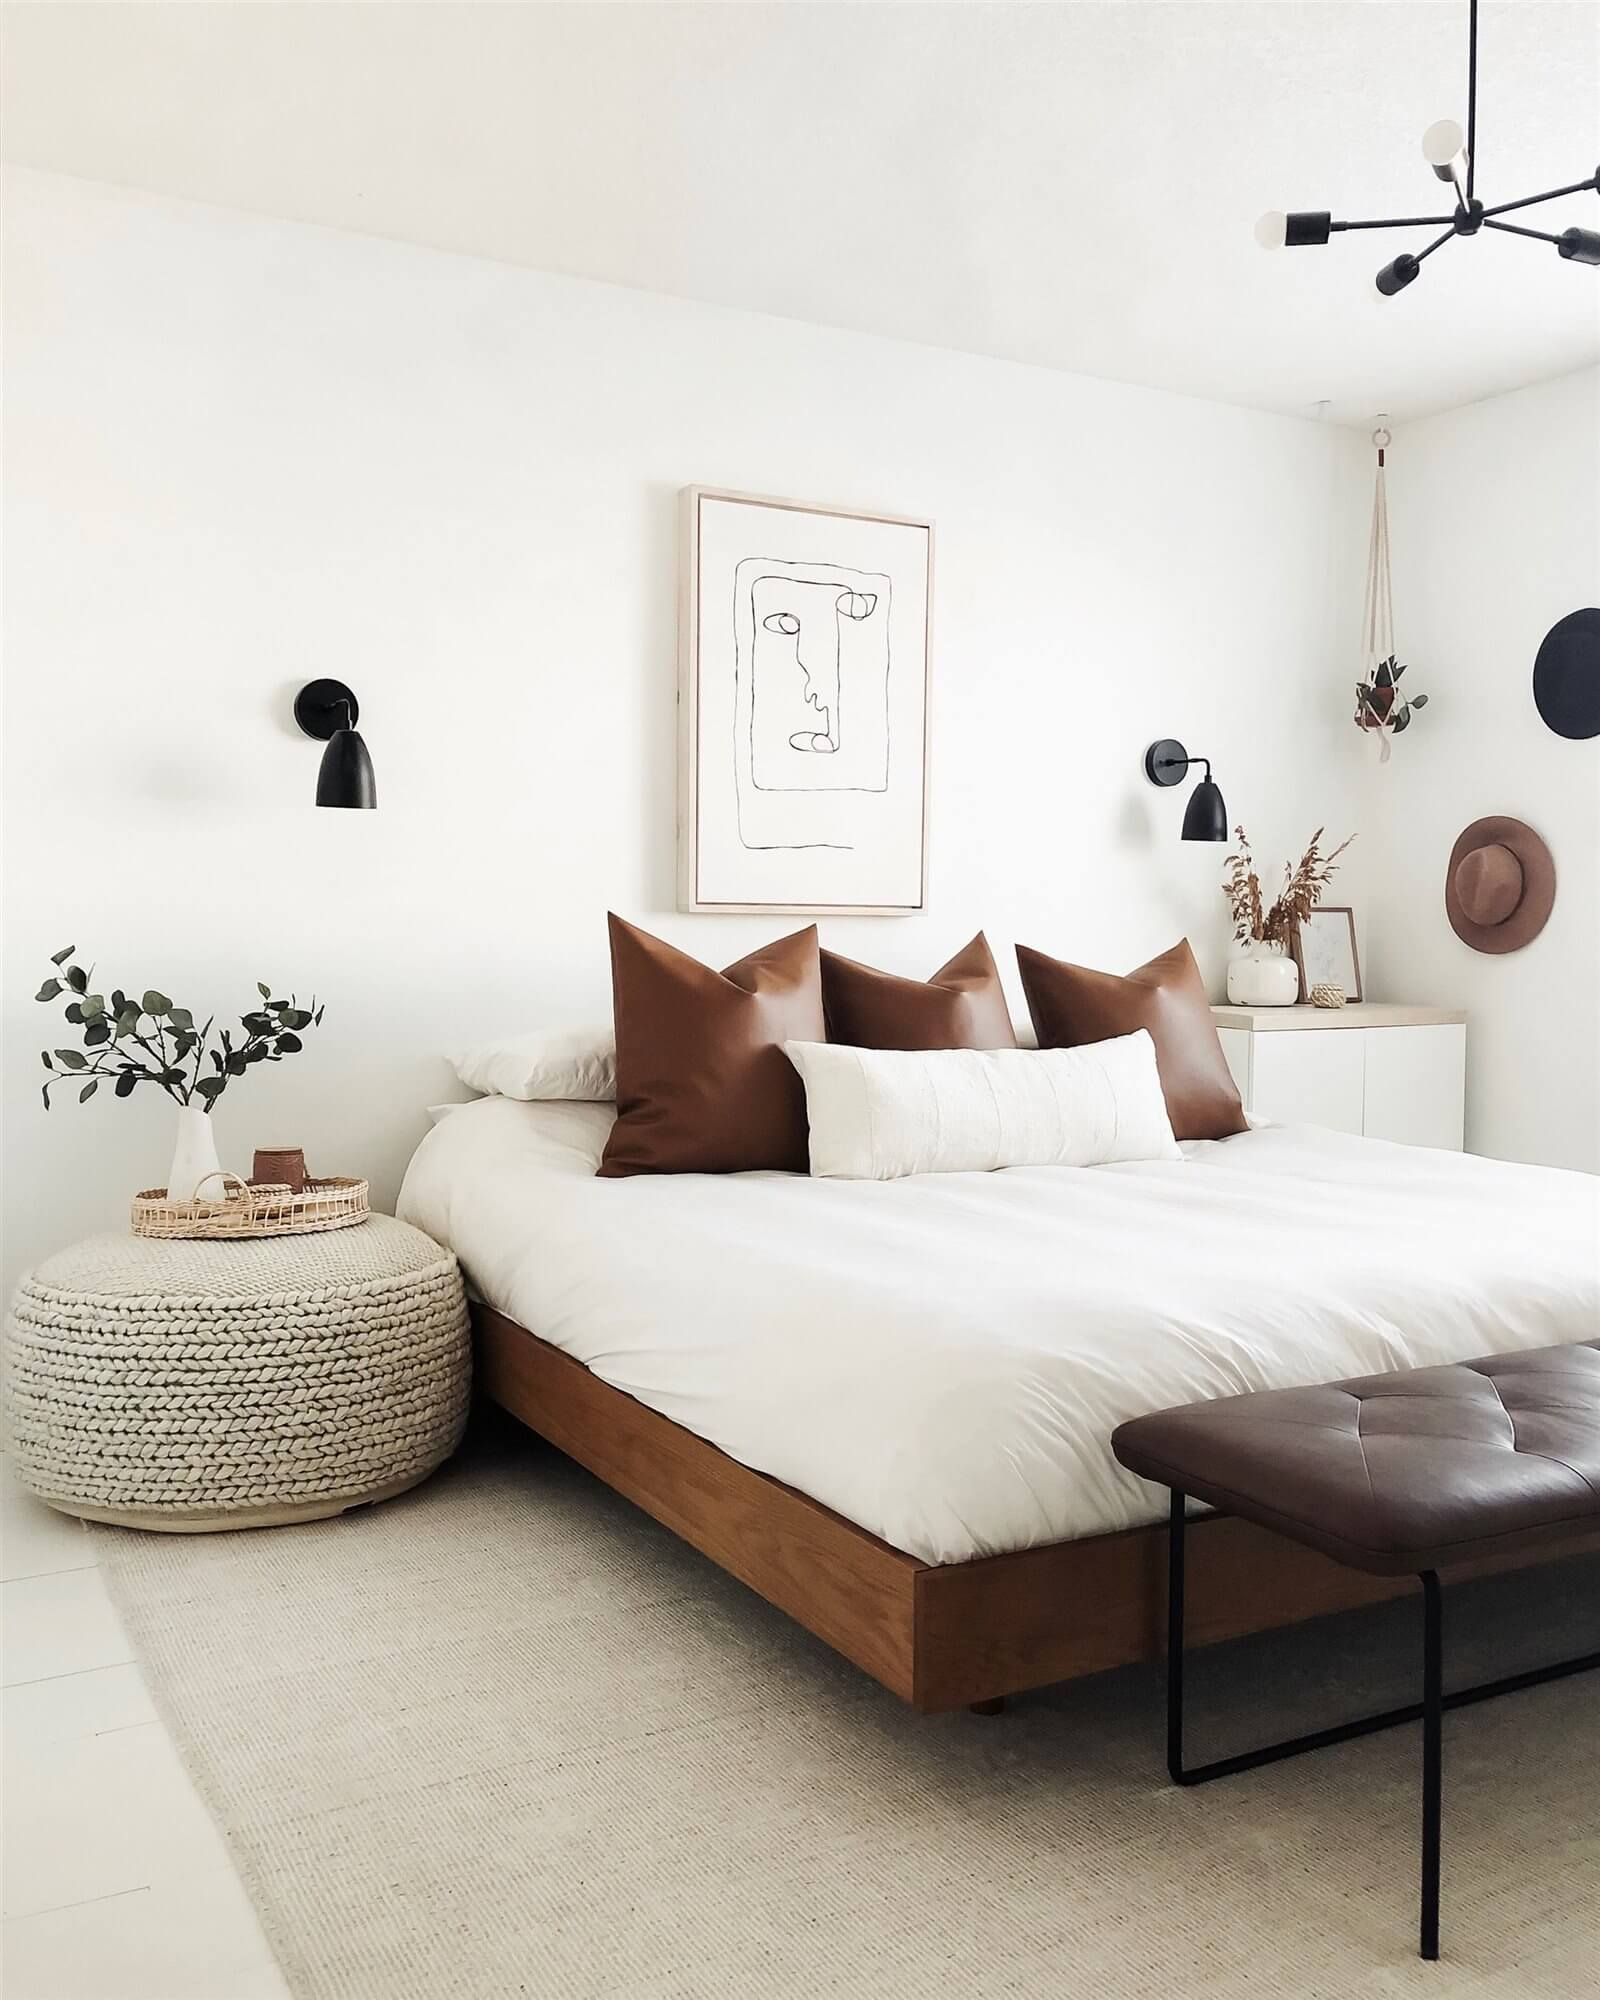 Mini bed bedroom without headboard